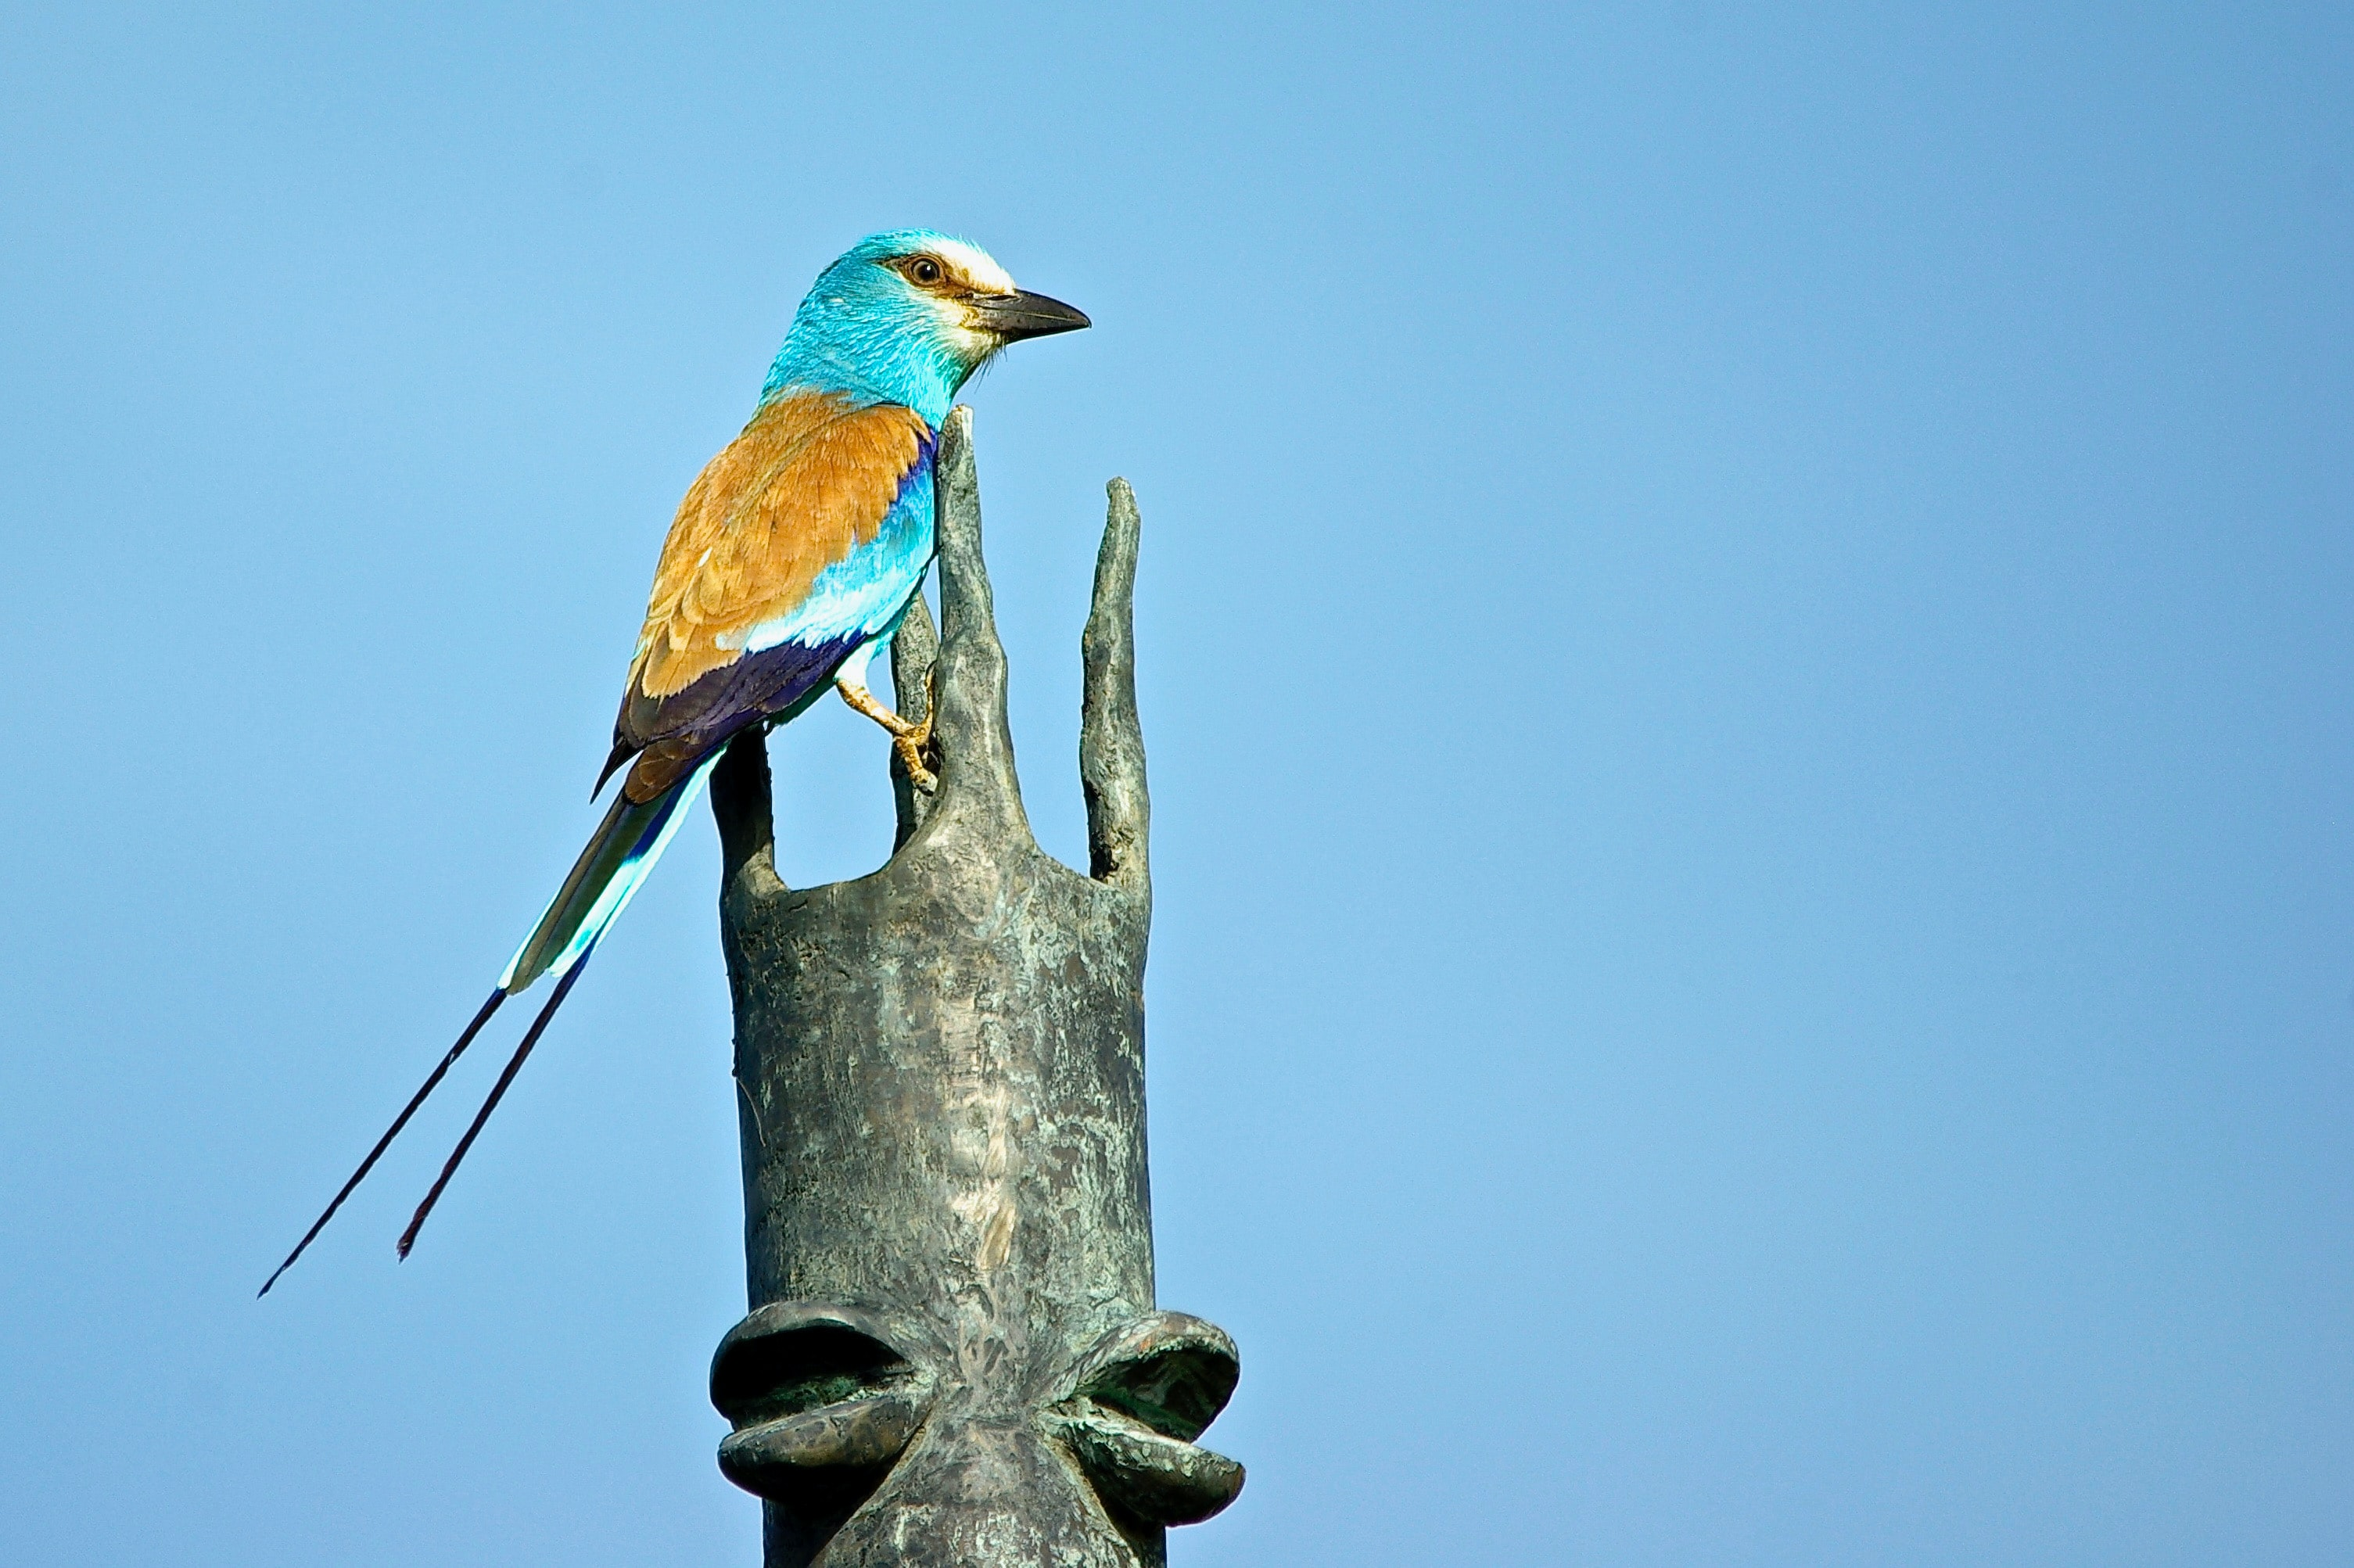 blue and brown bird on tree branch